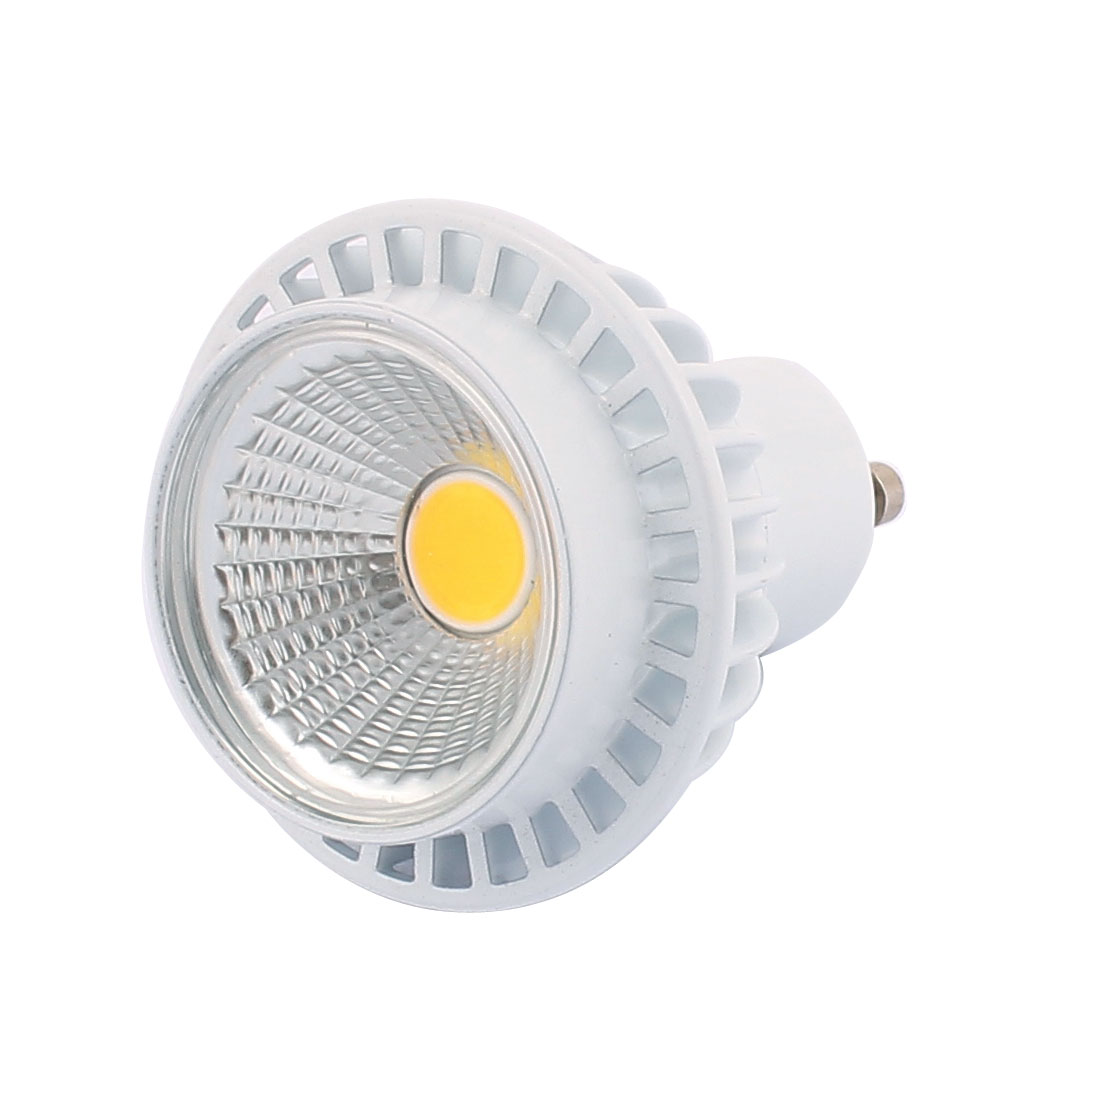 AC85-265V 3W GU10 COB LED Spotlight Lamp Bulb Practical Downlight Pure White